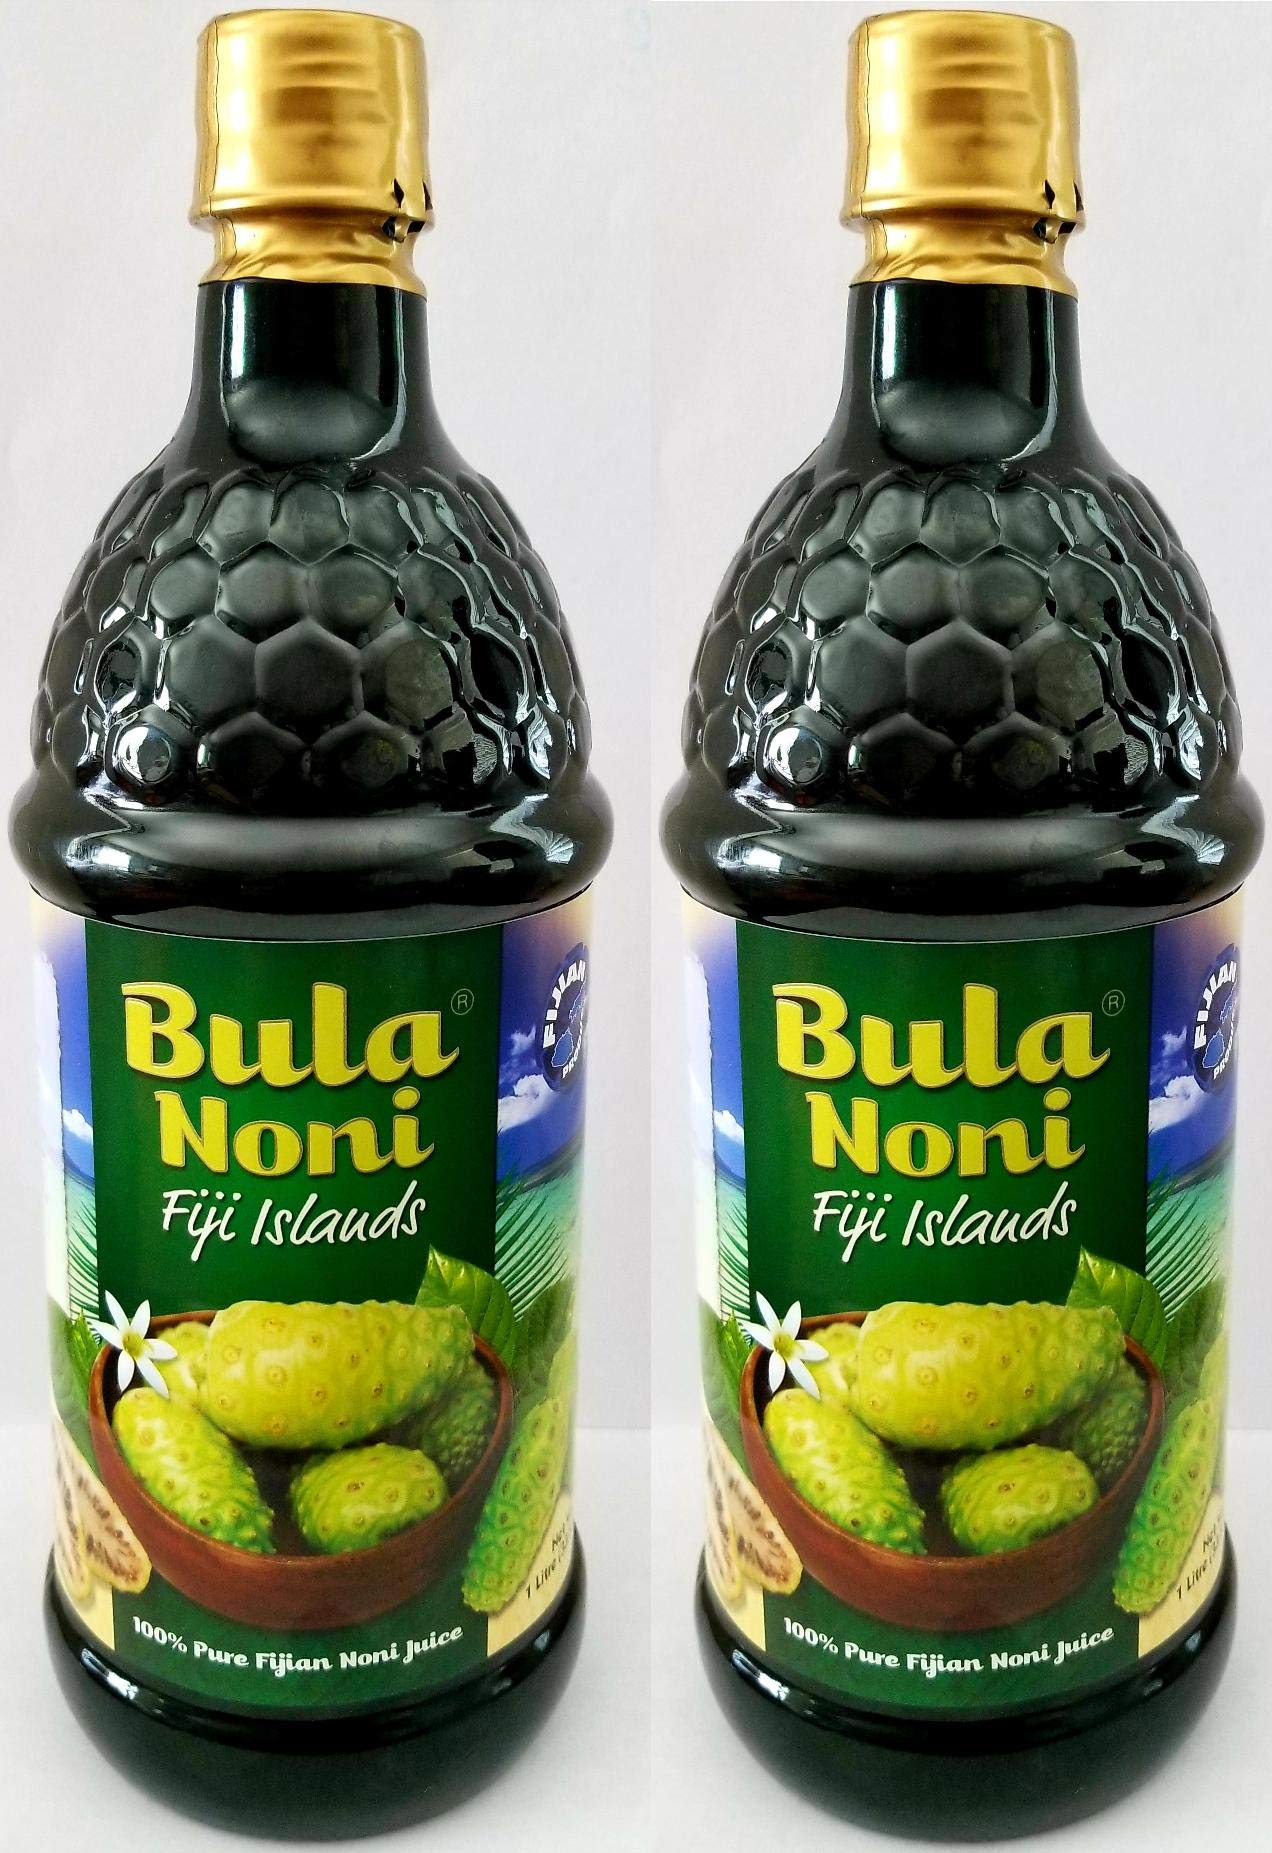 Bula NONI®Juice 100% Pure Certified Organic 2PK Case. (Two 1 Liter Bottles per case) Today's Deal. Nature's Super Food Juice.